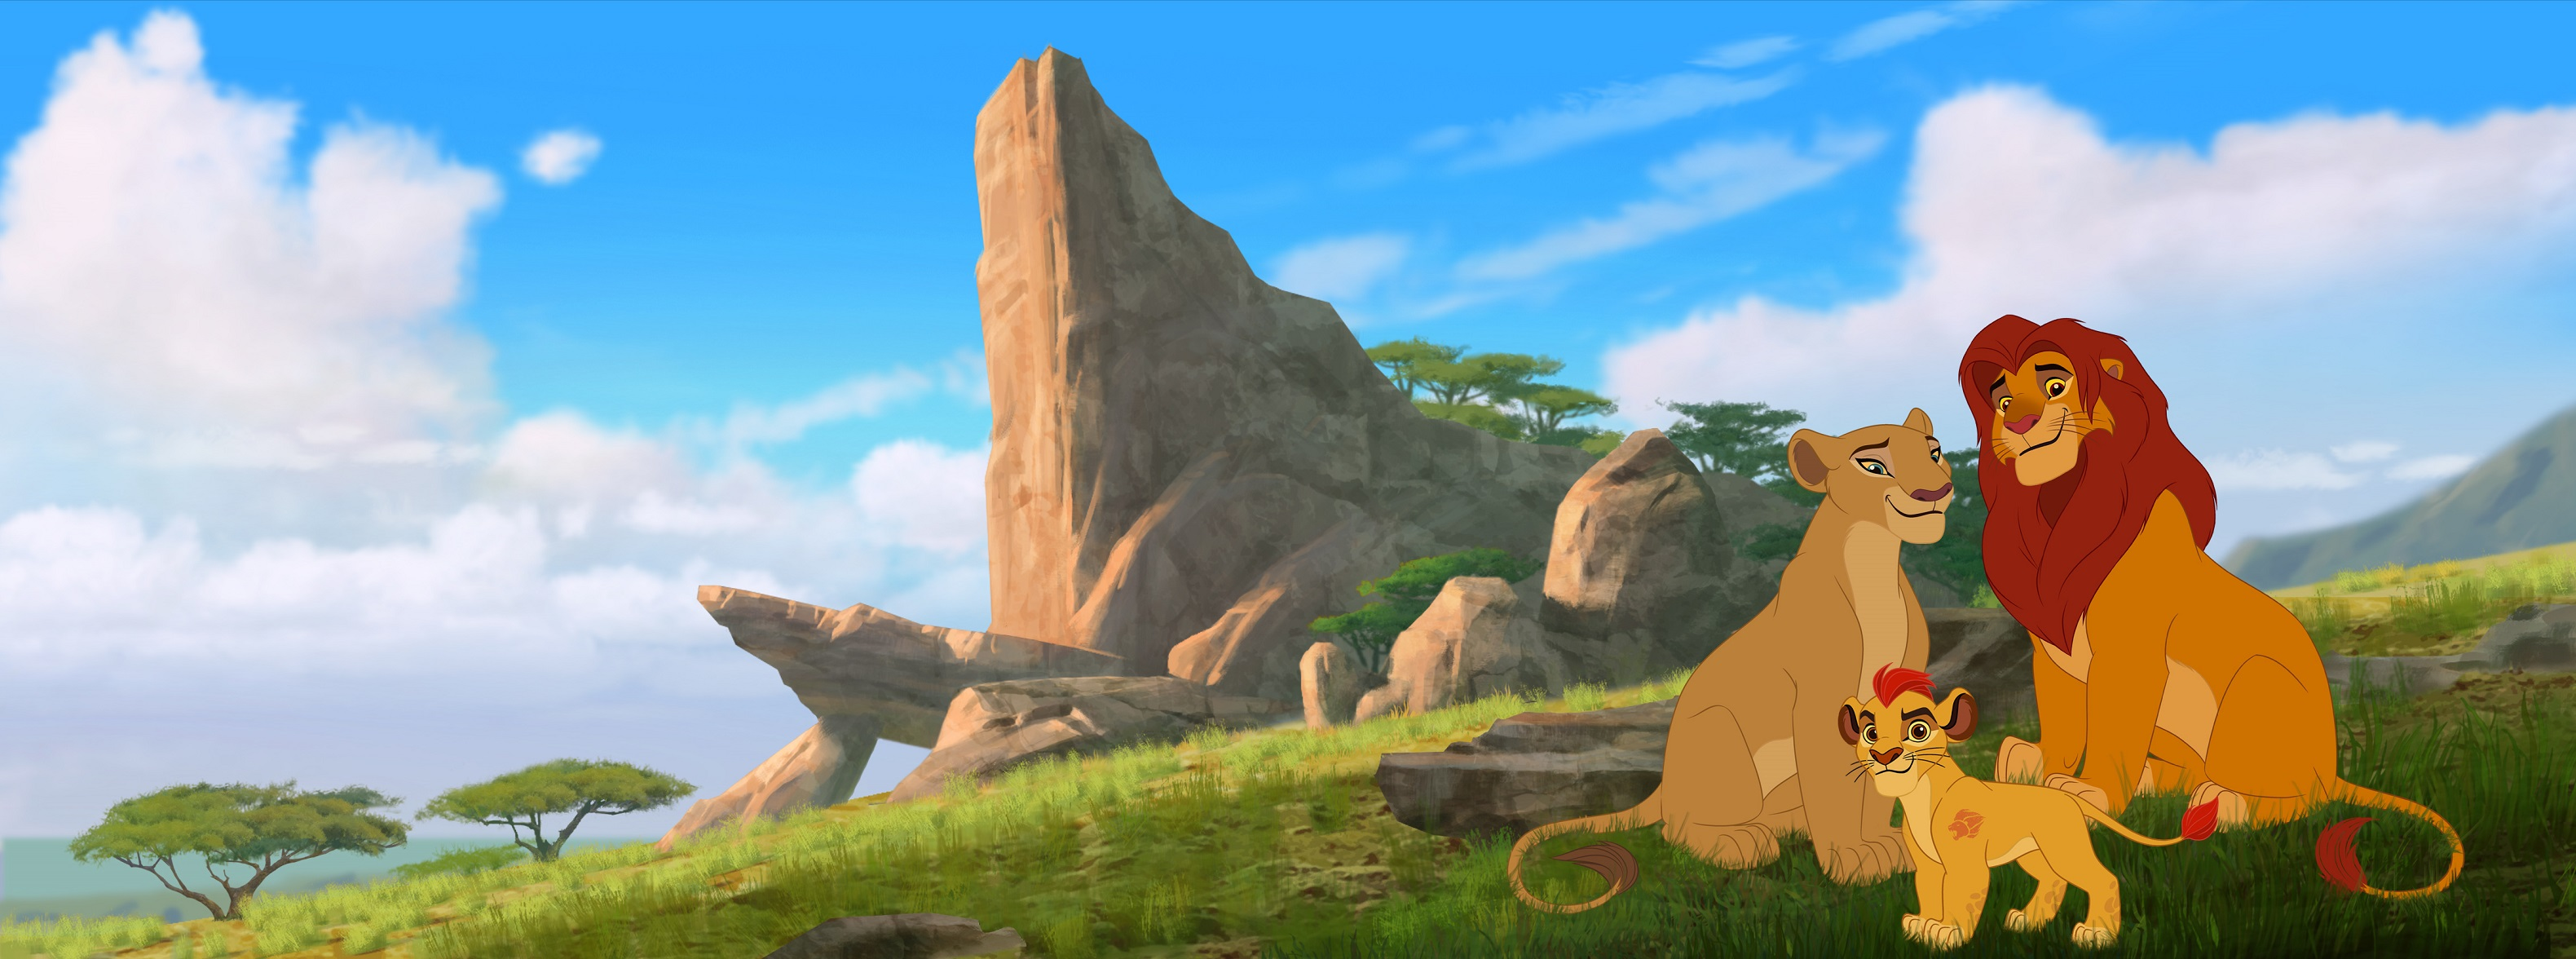 The Lion King Is Back The Lion Guard Return Of The Roar In The Playroom